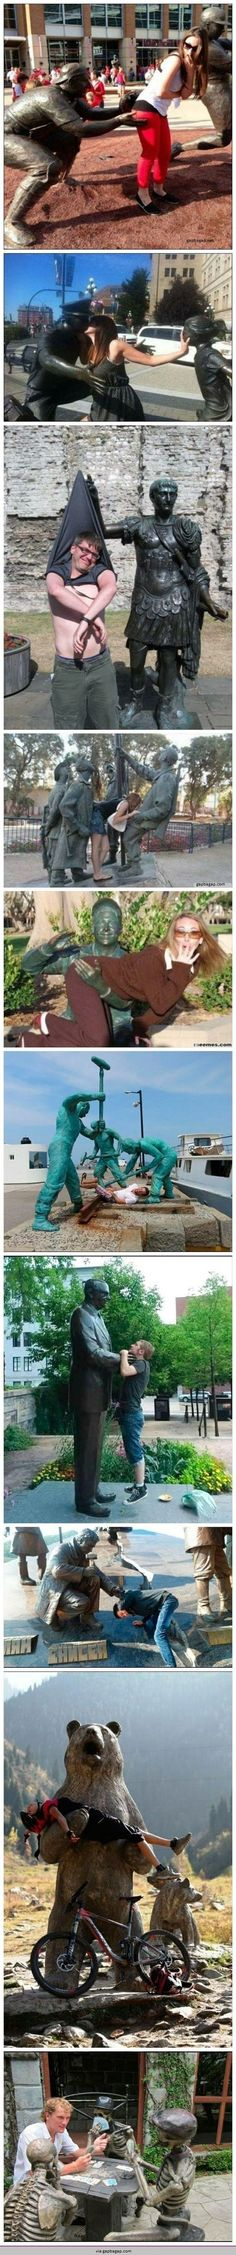 Funny Pictures Of People Having Fun With Statues - Tap the link now to see all of our cool cat collections!